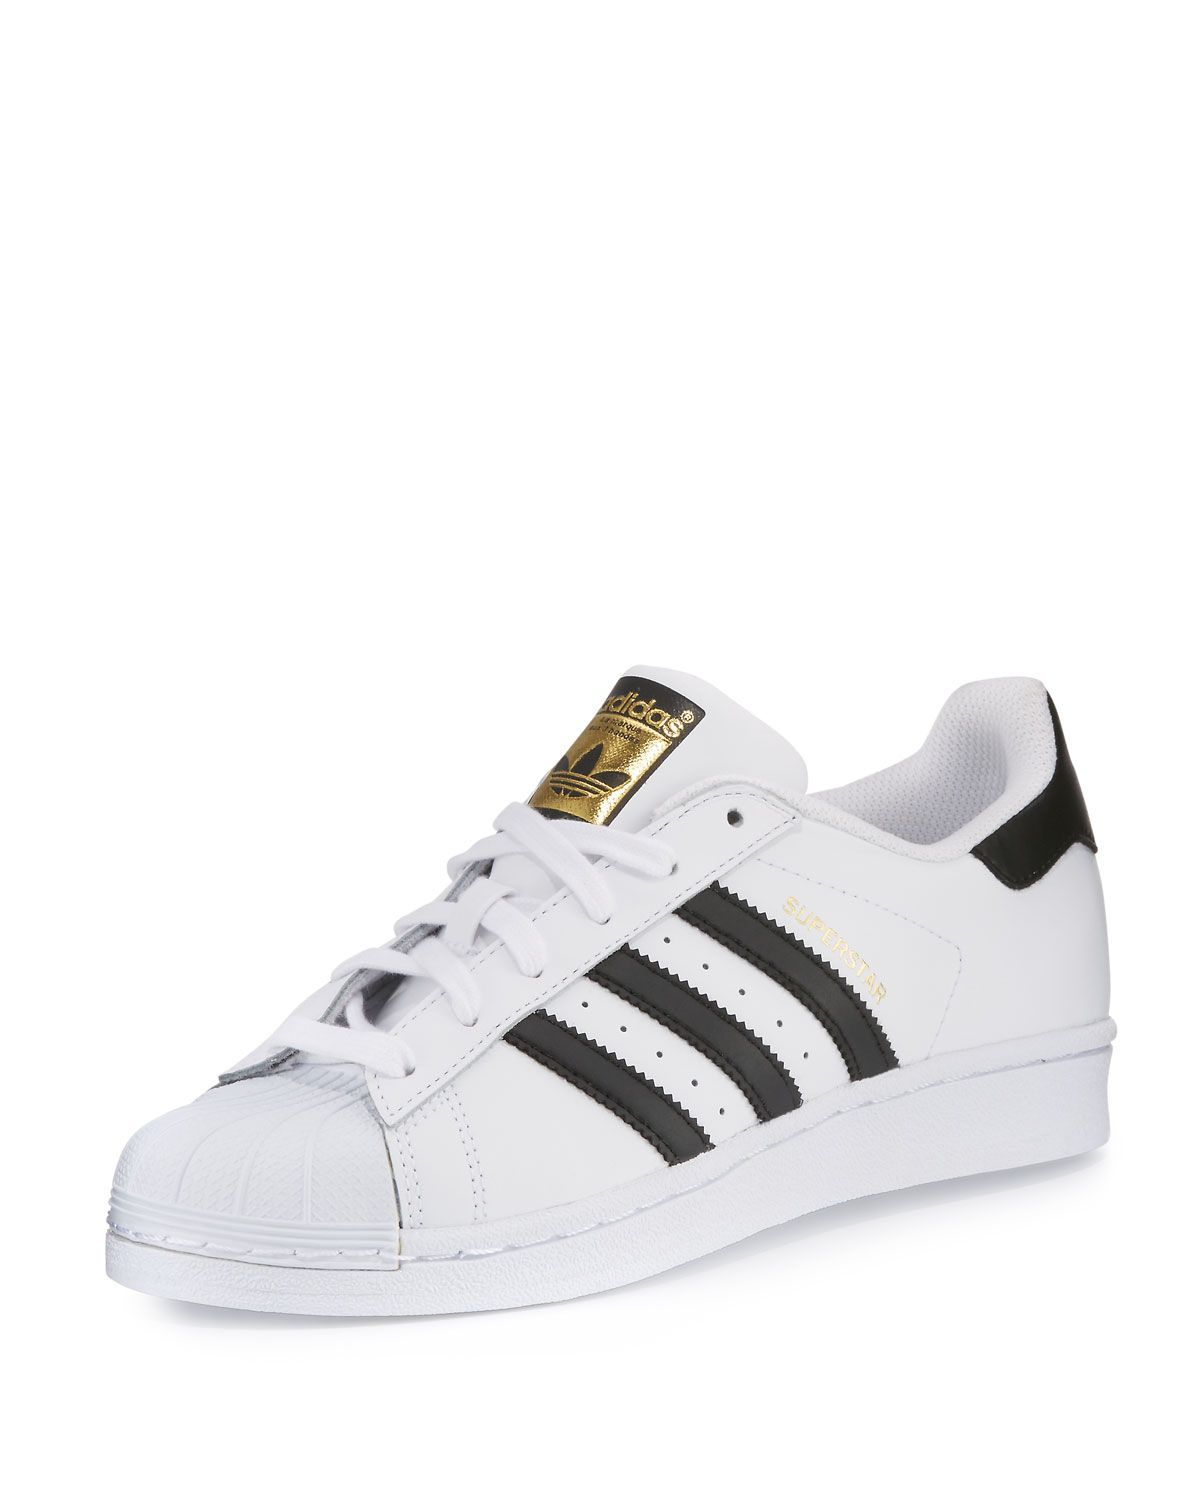 f8c4243d2b8b adidas Superstar Classic Mens Leather Sneakers Addias Shoes